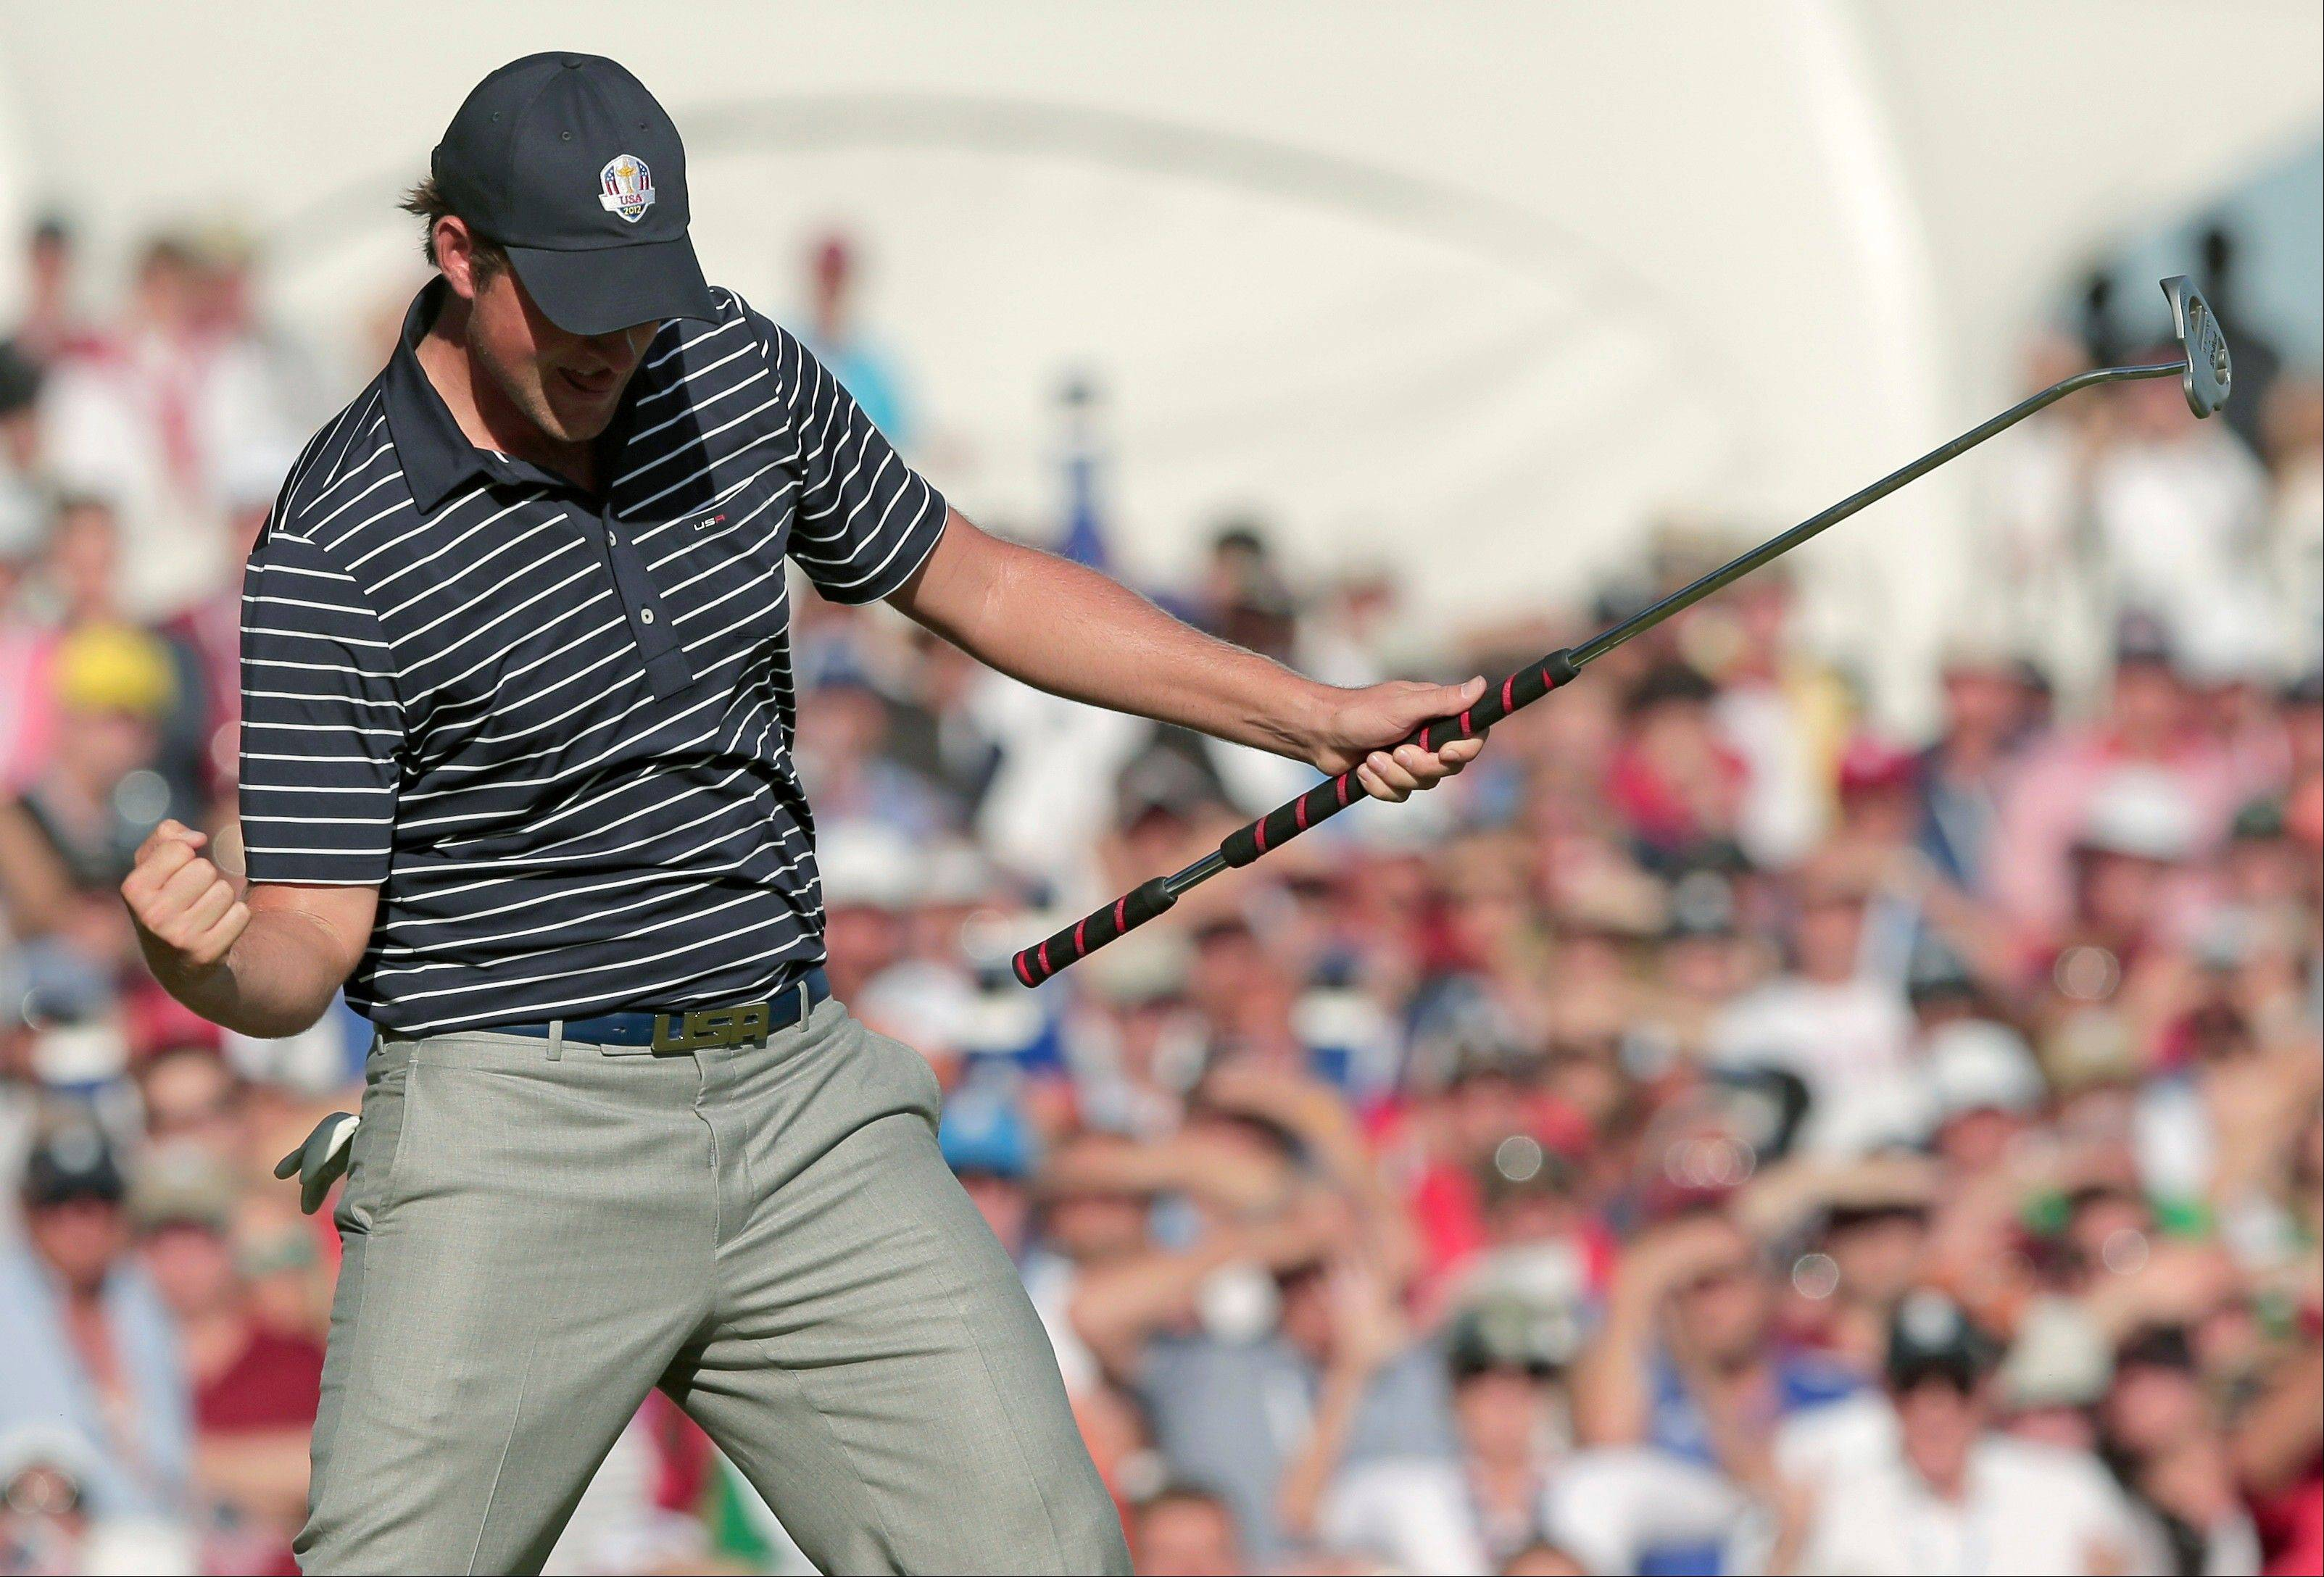 USA's Webb Simpson reacts after making a putt to win the 13th hole during a fourball match Saturday at the Ryder Cup. Simpson and Watson won their match to give Team USA a 9-4 lead.